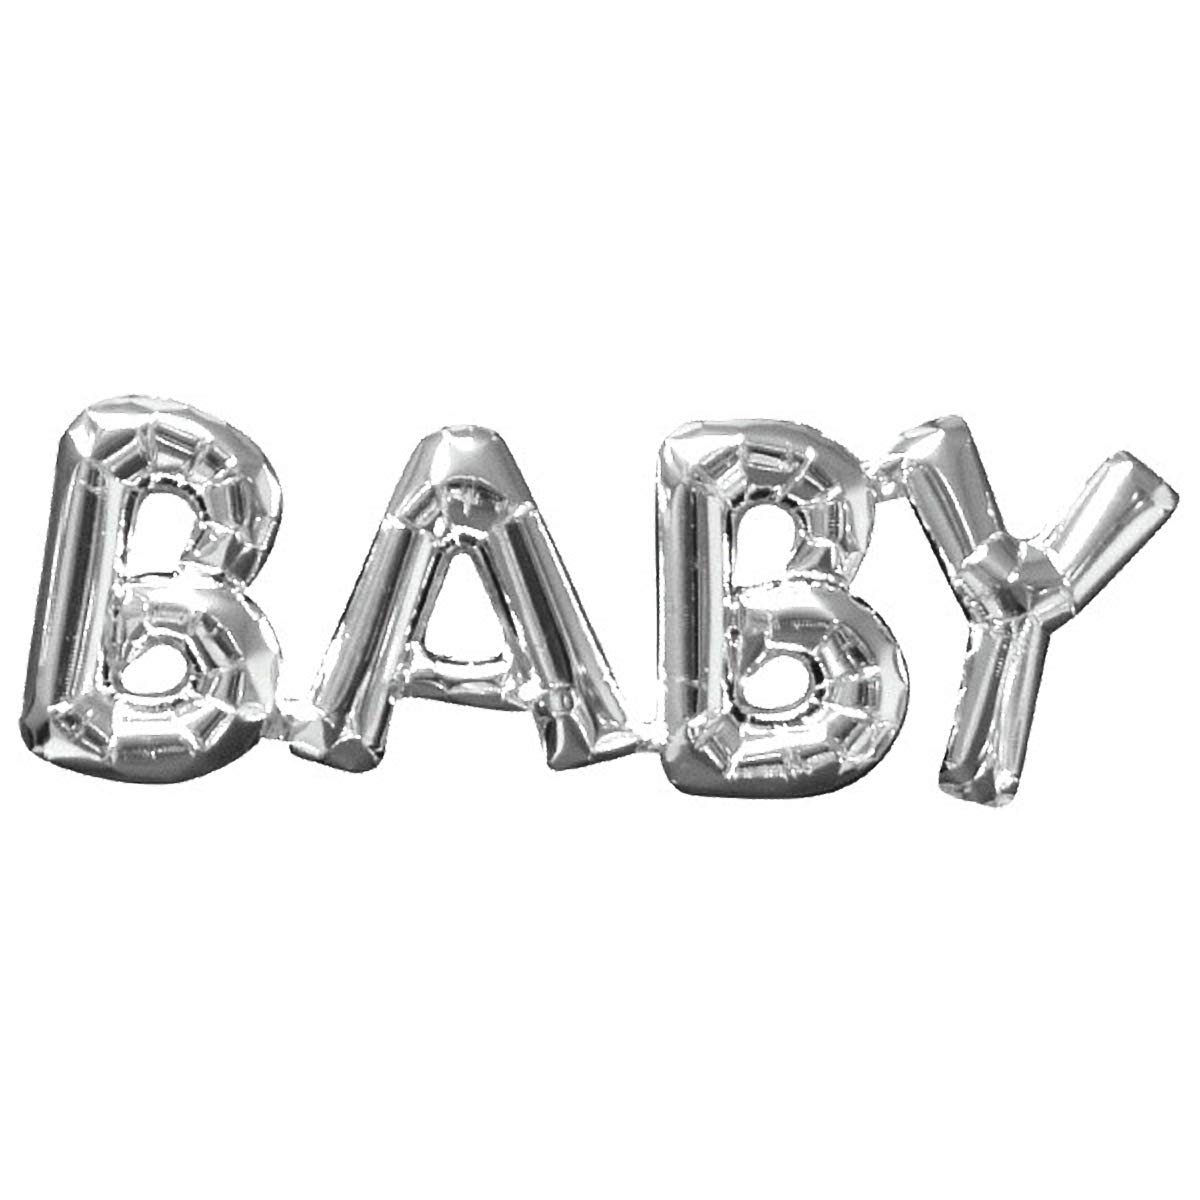 Party Decor Air-Filled Word BalloonBaby Silver 5 Ct Amscan 3310630